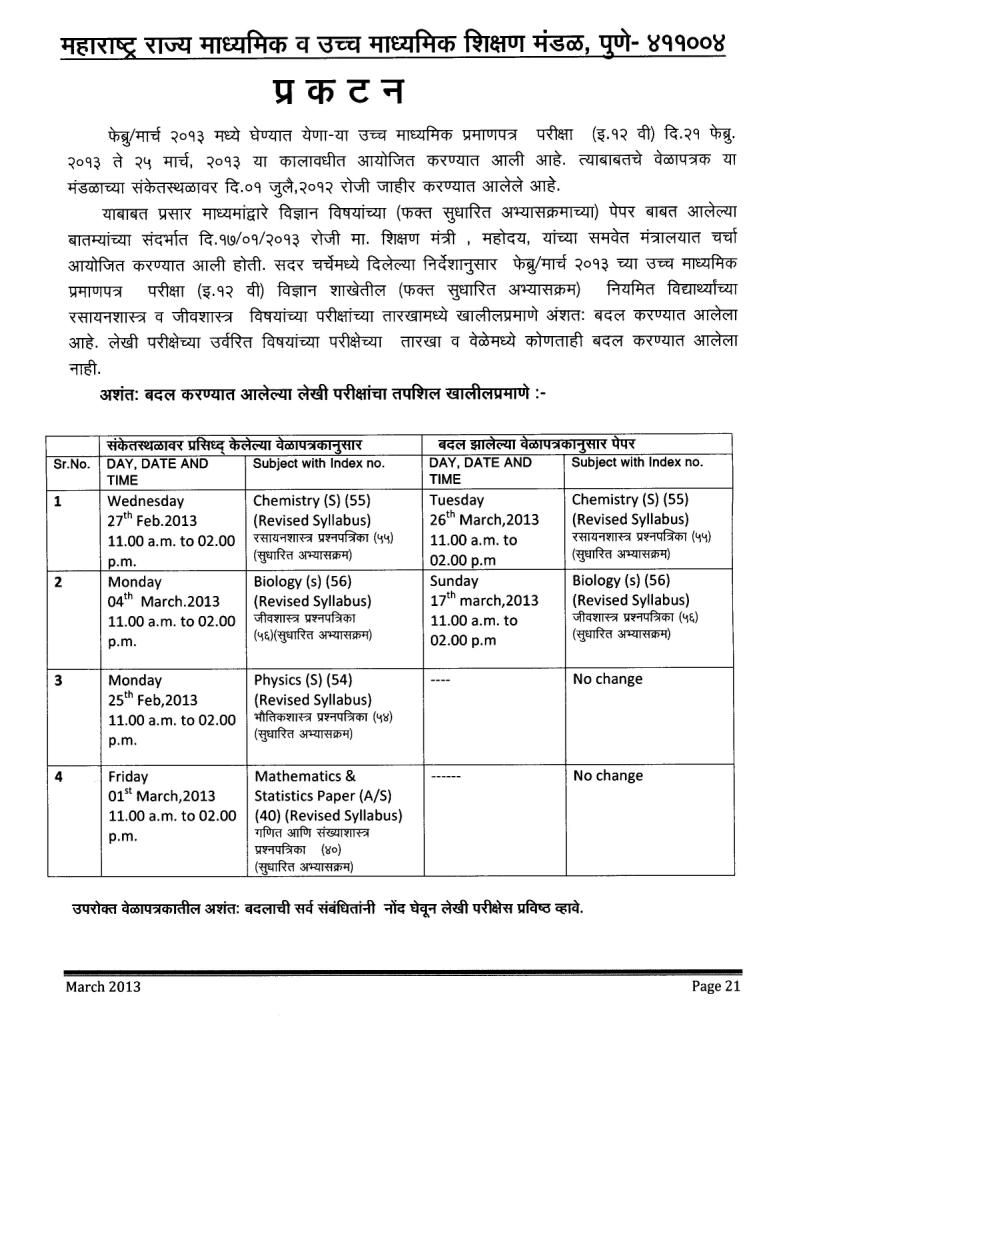 SSC/HSC 10th/12th TIME TABLE 2013 MAHARASHTRA BOARD msbshse.ac.in